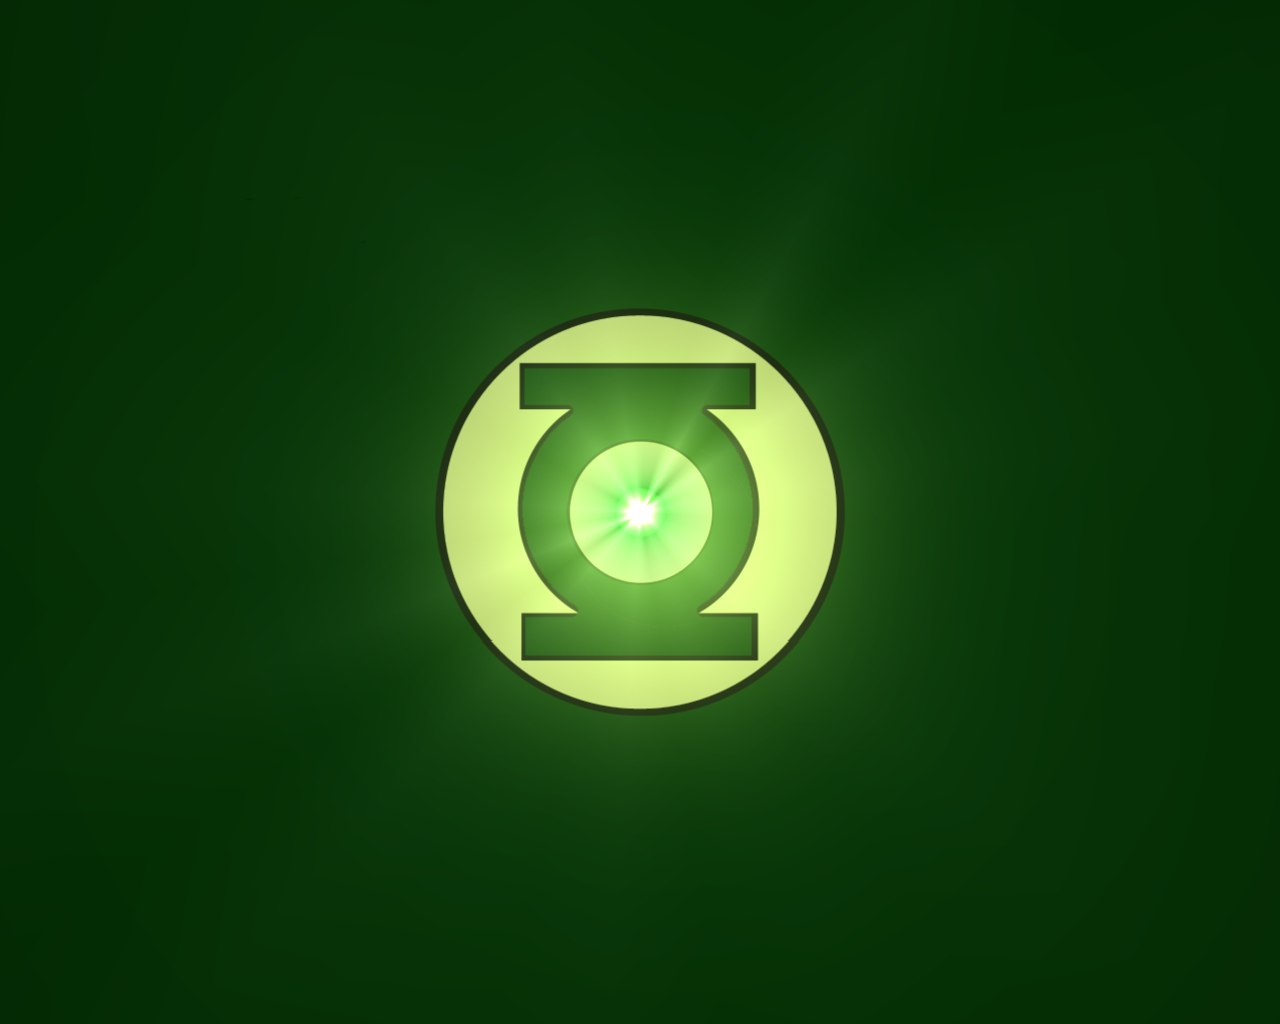 green lantern wallpaper by thrumm customization wallpaper other 2009 1280x1024